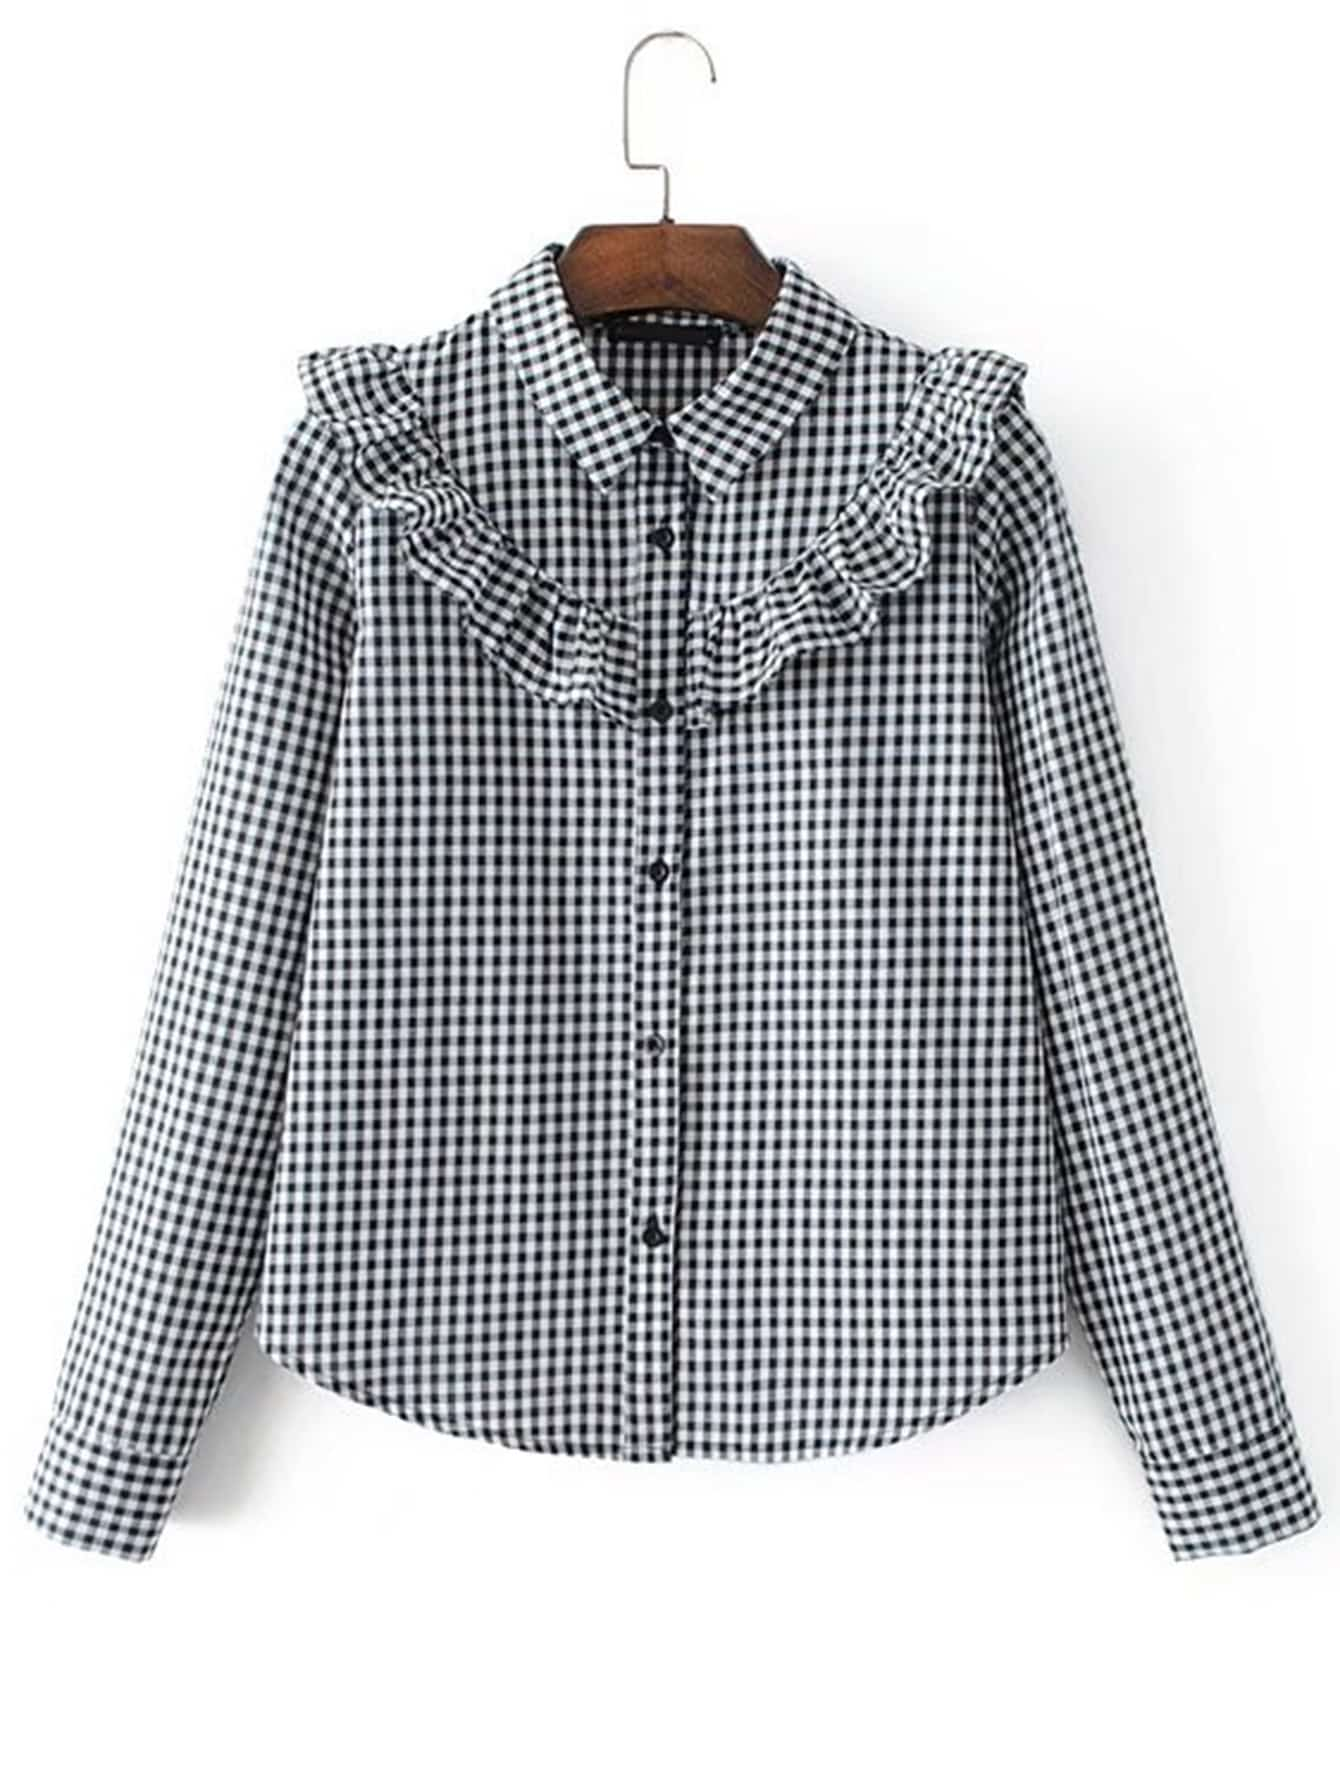 Ruffle Detail Gingham Blouse